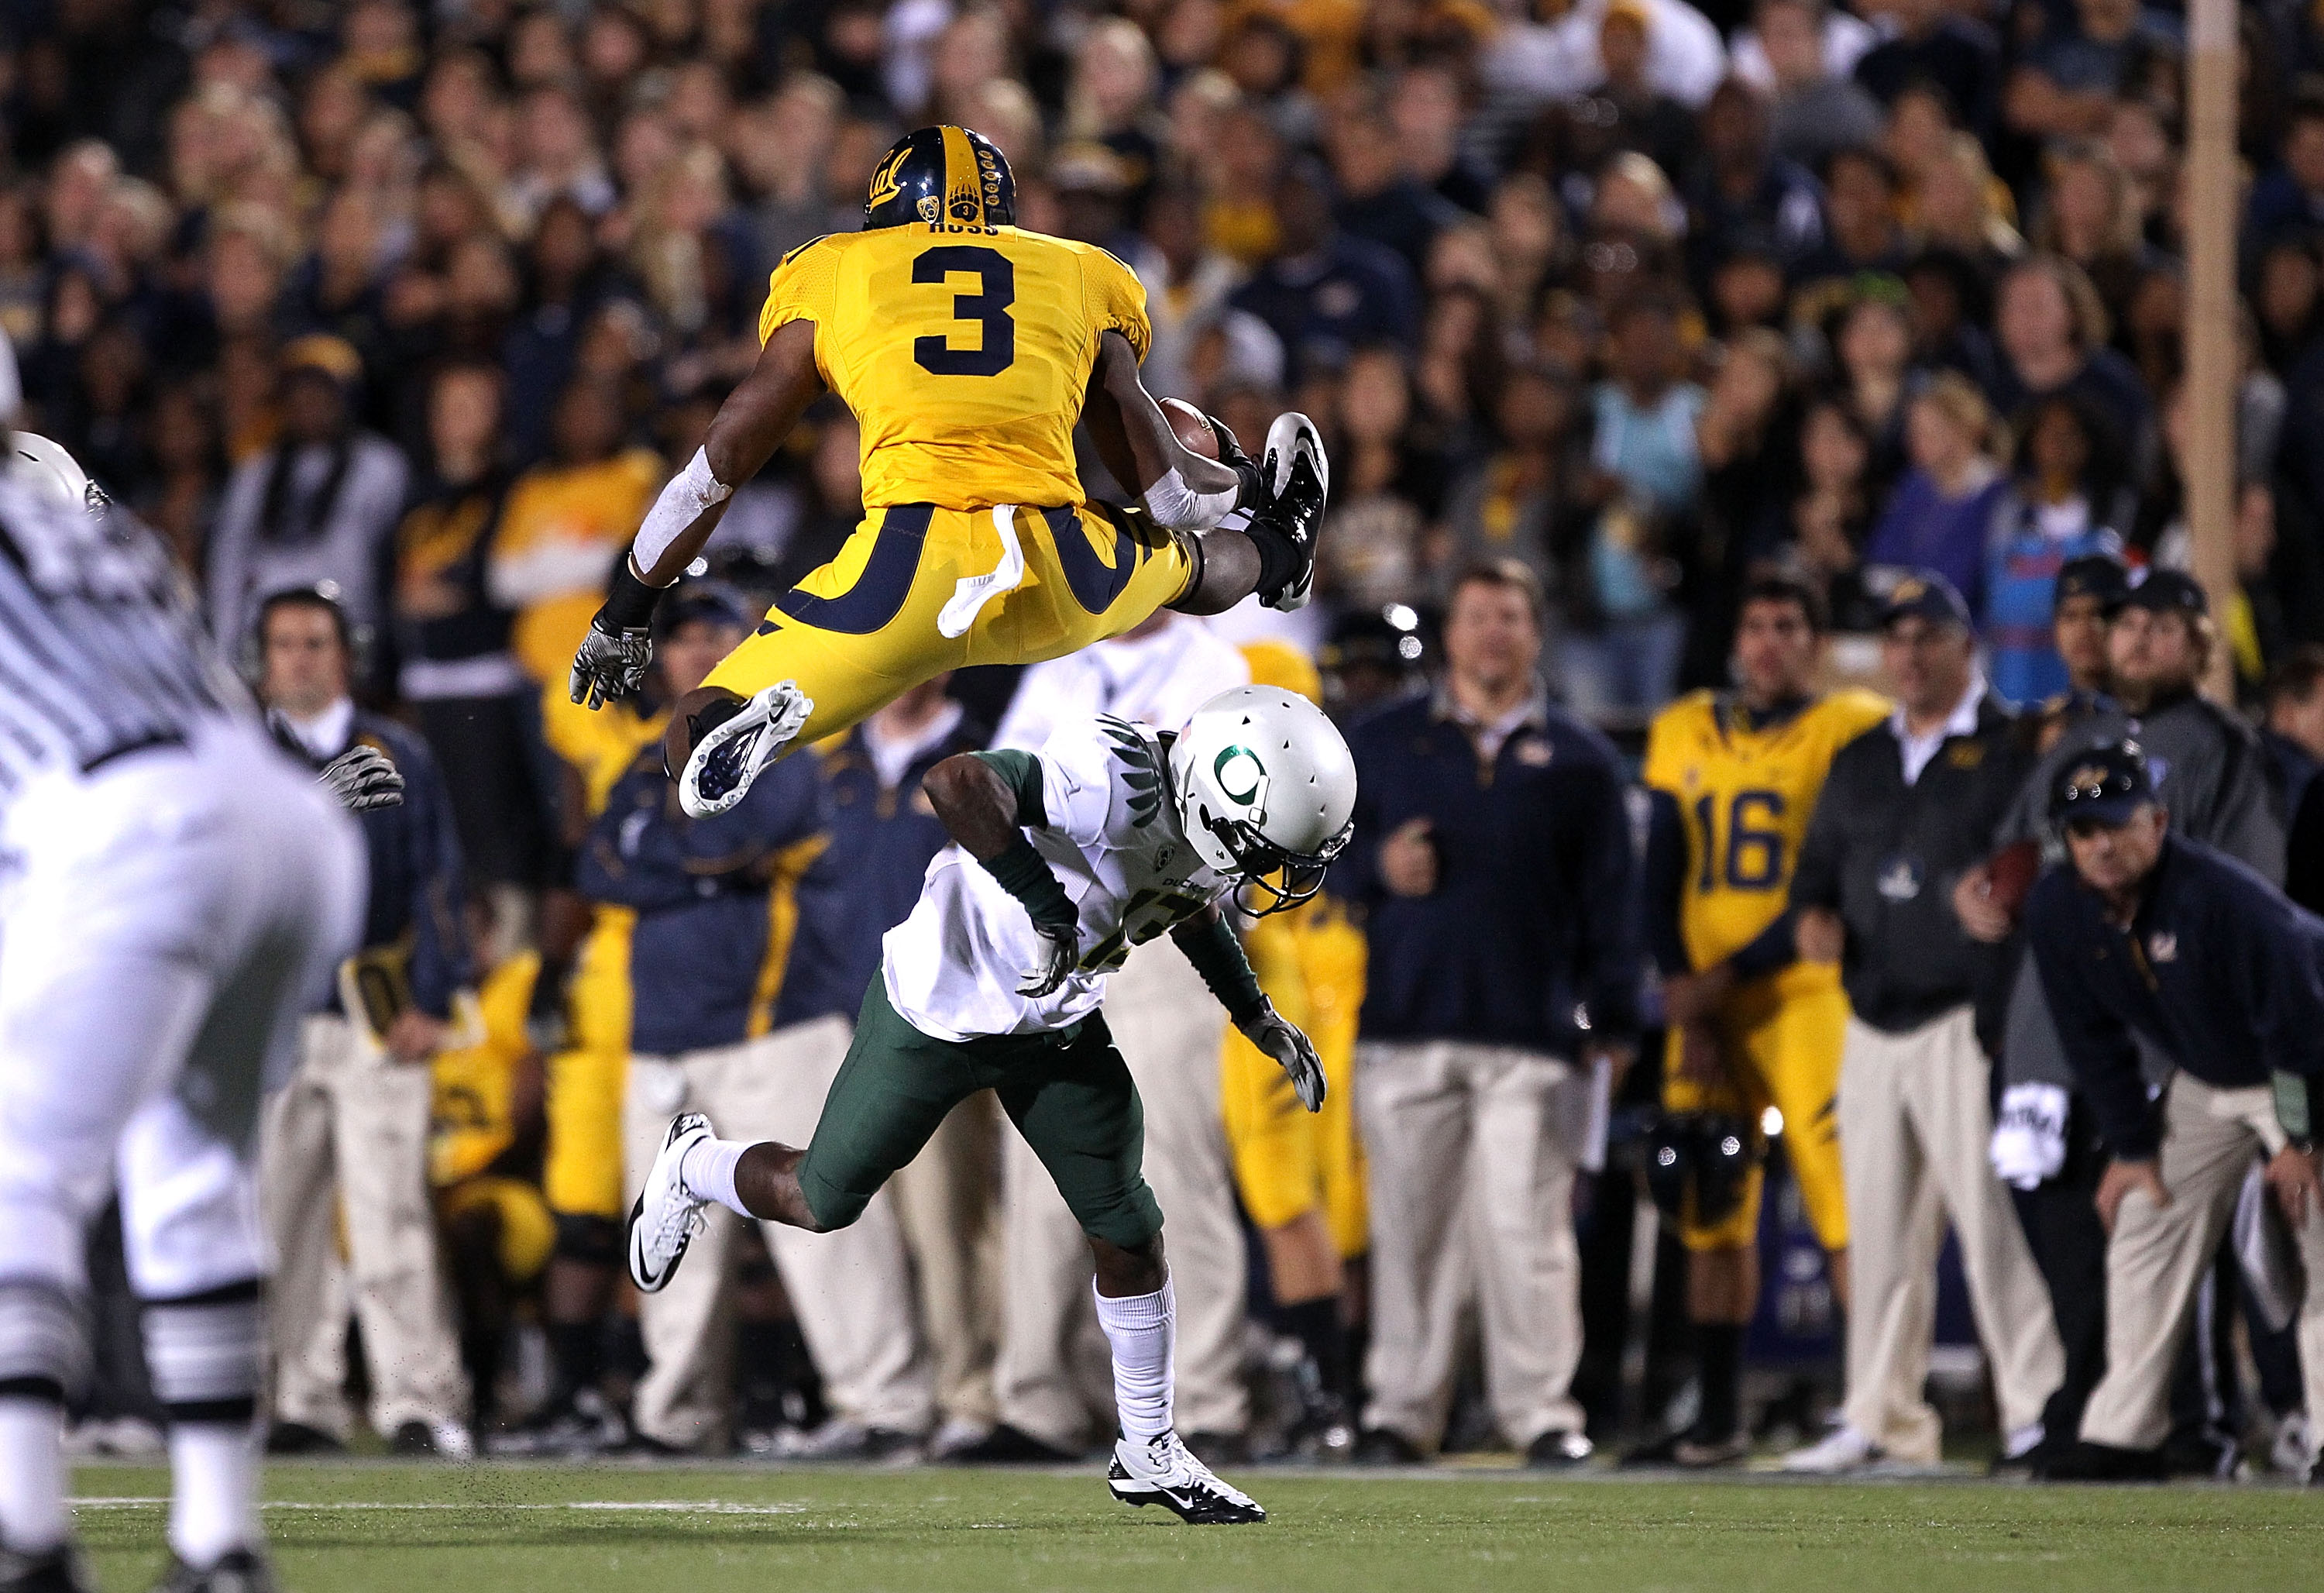 BERKELEY, CA - NOVEMBER 13:  Jeremy Ross #3 of the California Golden Bears jumps over Cliff Harris #13 of the Oregon Ducks at California Memorial Stadium on November 13, 2010 in Berkeley, California.  (Photo by Ezra Shaw/Getty Images)